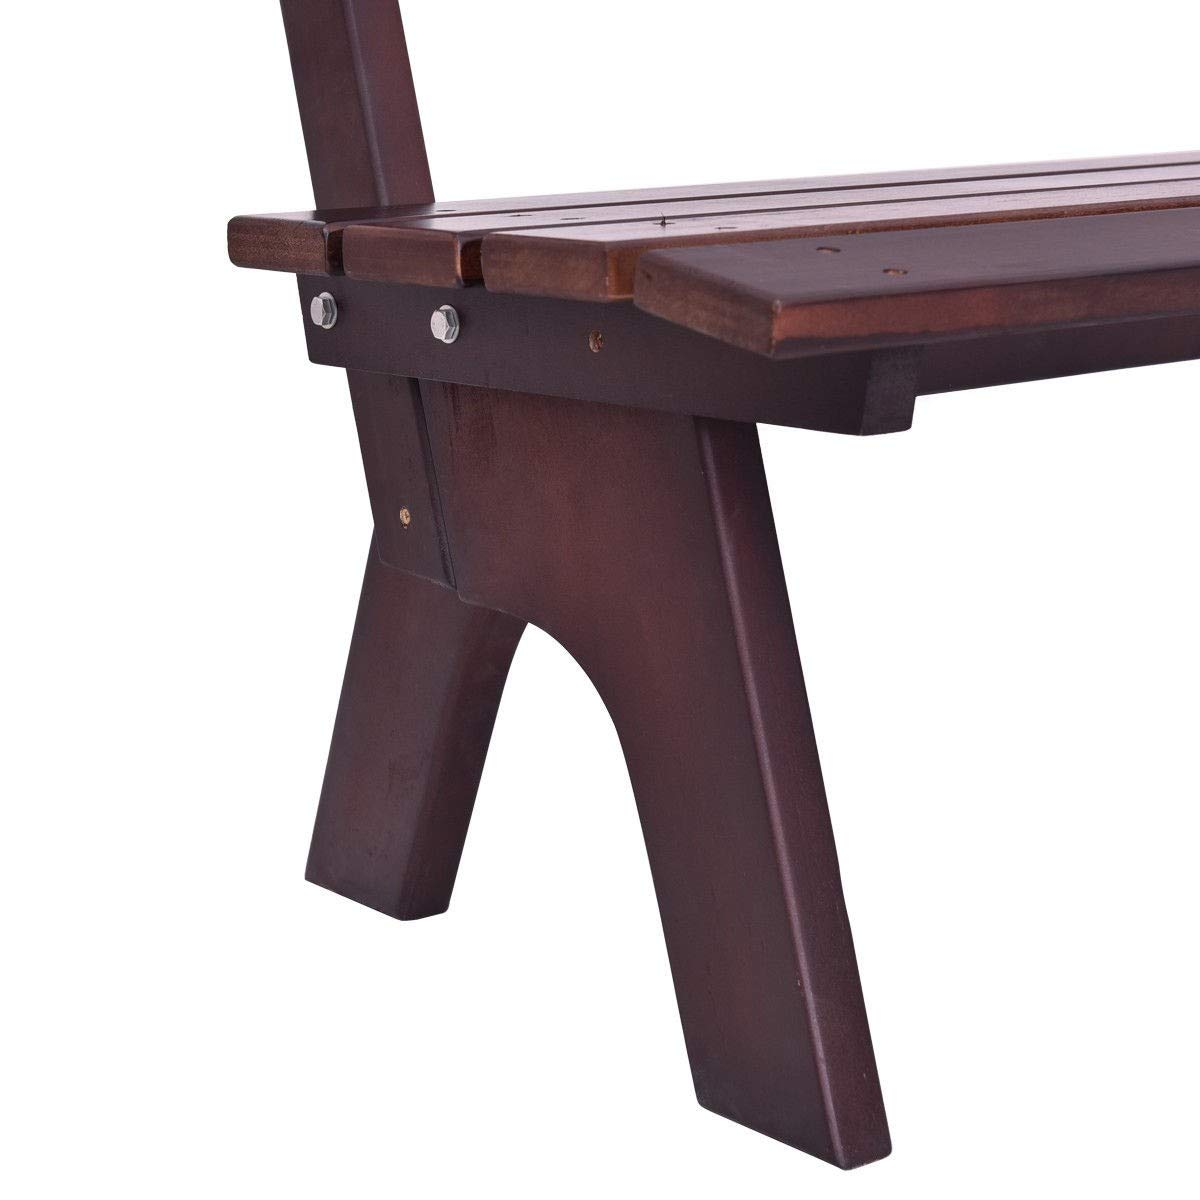 MD Group 5 ft 3 Seats Outdoor Wooden Garden Bench Chair, Brown by MD Group (Image #9)